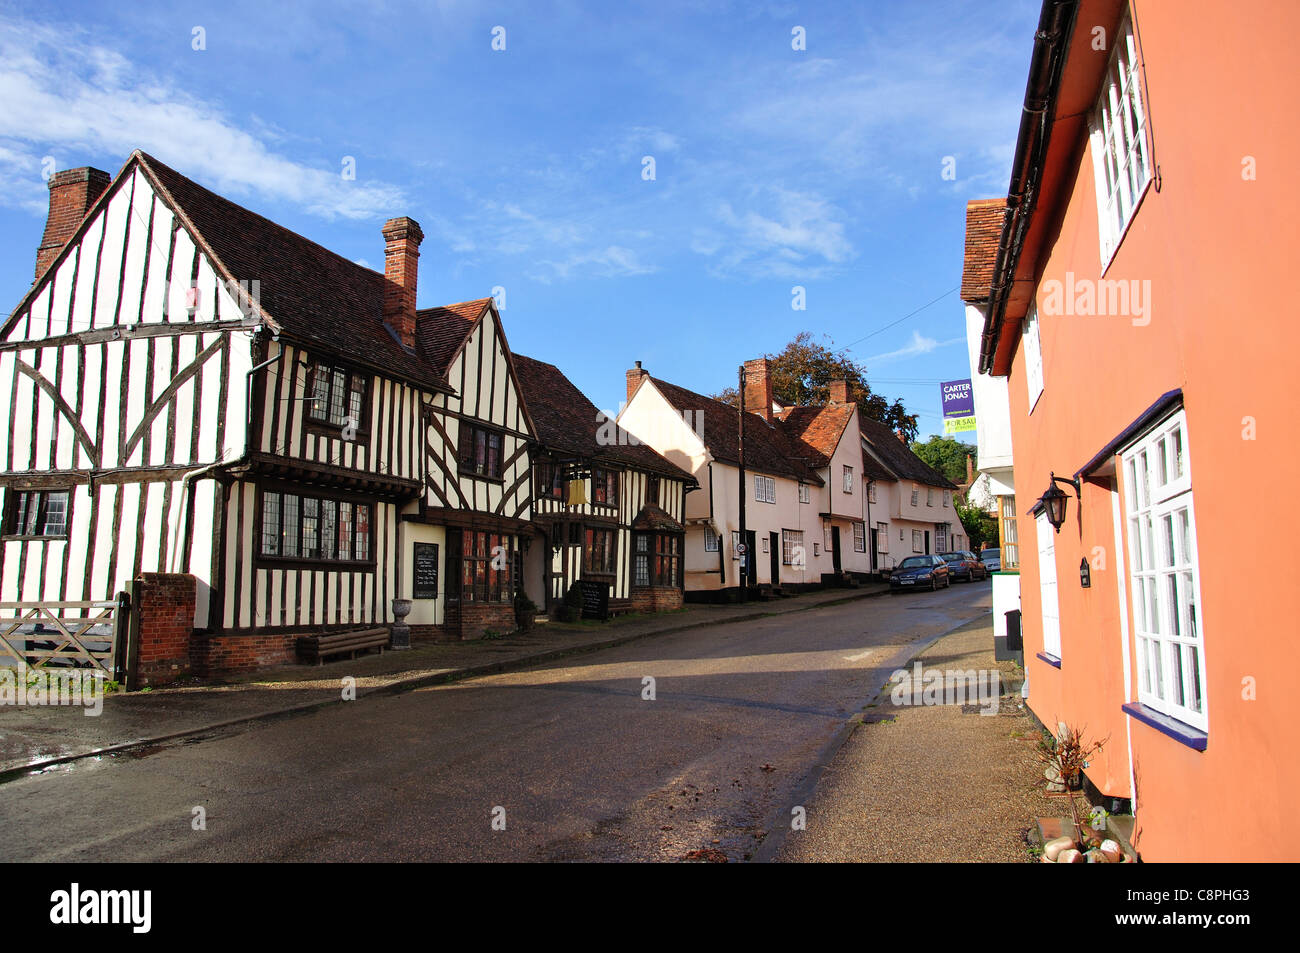 The Bell Inn and houses on The Street, Kersey, Suffolk, England, United Kingdom - Stock Image